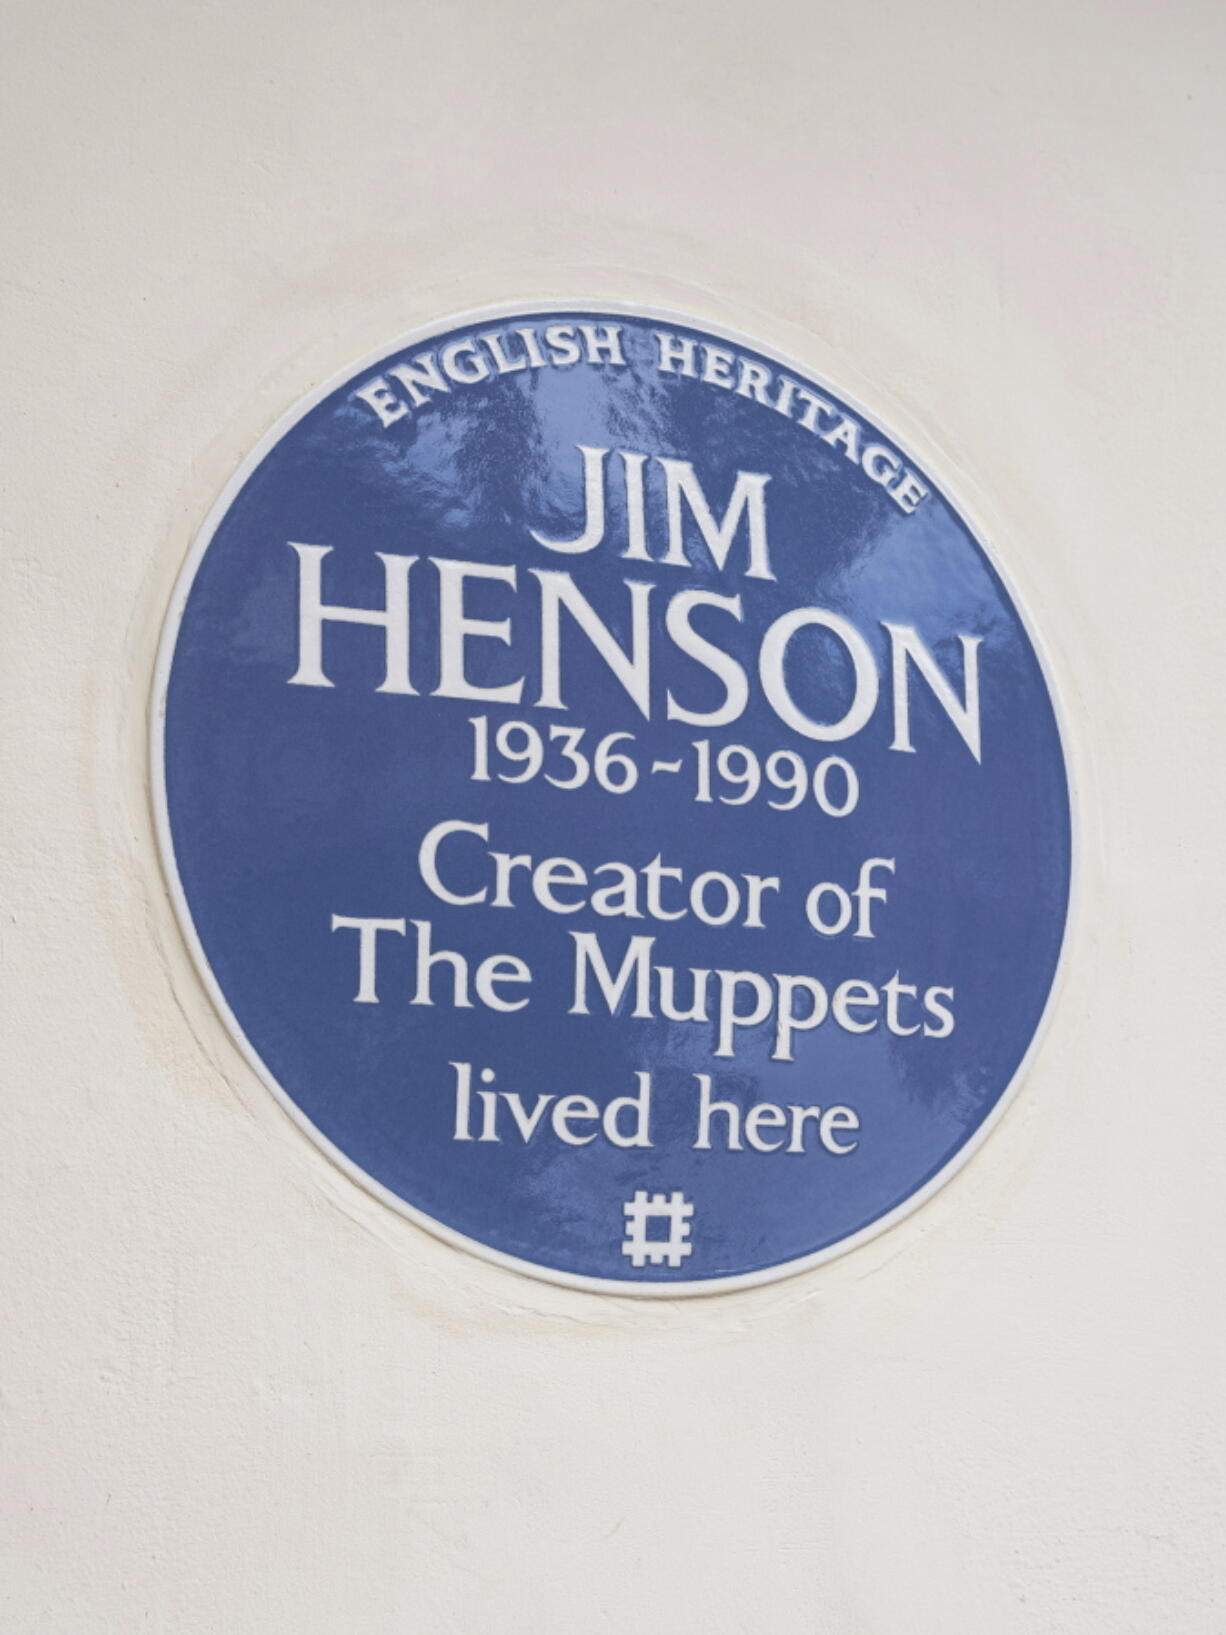 In this undated photo provided by English Heritage a view of the blue plaque on the former London home of Jim Henson, creator of The Muppets, who has been honoured with a blue plaque.  The American creator of the Muppets was honored Tuesday, Sept, 7, 2021 in Britain with a blue plaque at his former home in north London, which he bought after 'The Muppet Show' was commissioned for British television -- 50 Downshire Hill in Hampstead in north London to be precise.